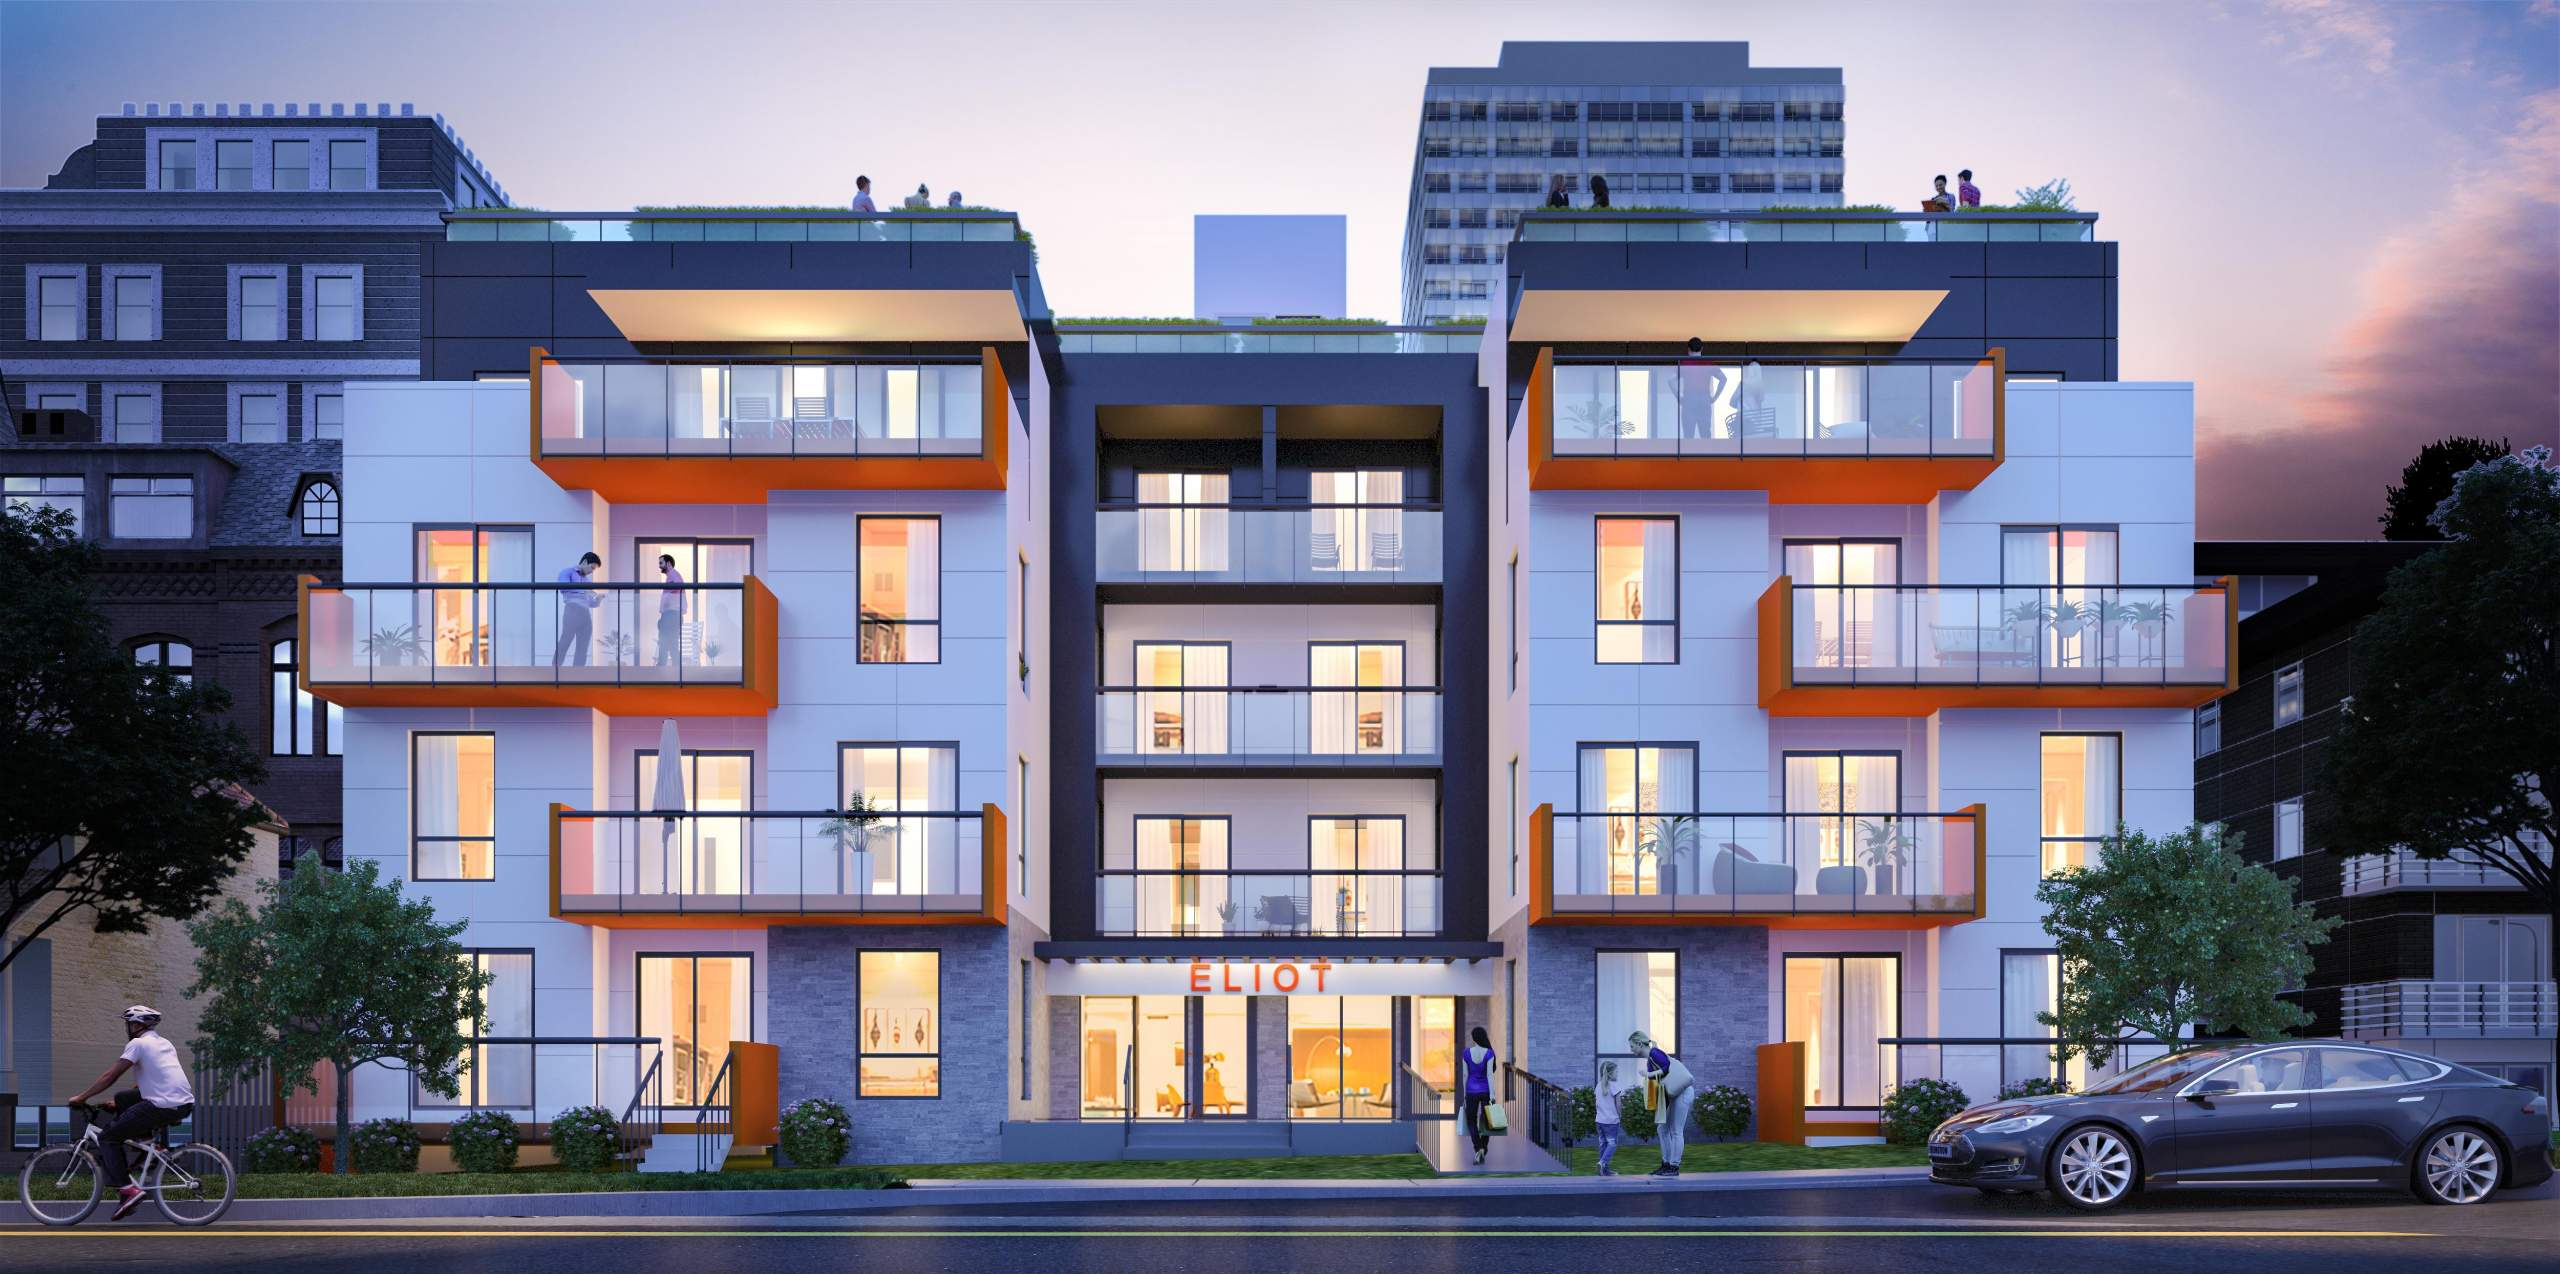 Eliot At Norquay – Plans, Prices, Availability